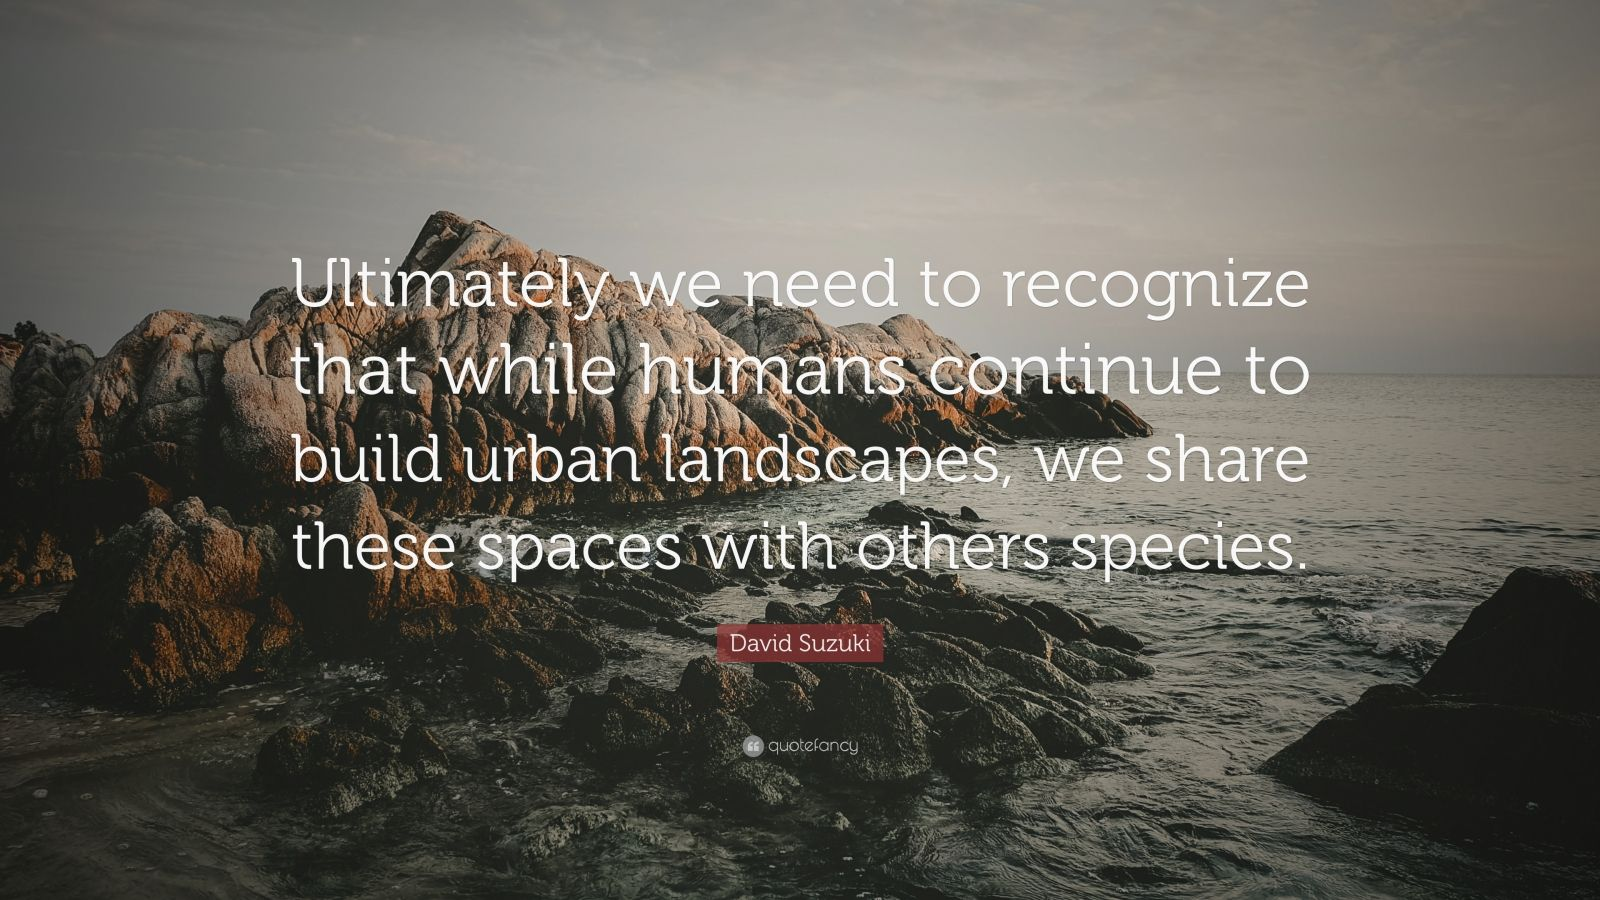 """David Suzuki Quote: """"Ultimately we need to recognize that while humans continue to build urban landscapes, we share these spaces with others species."""""""